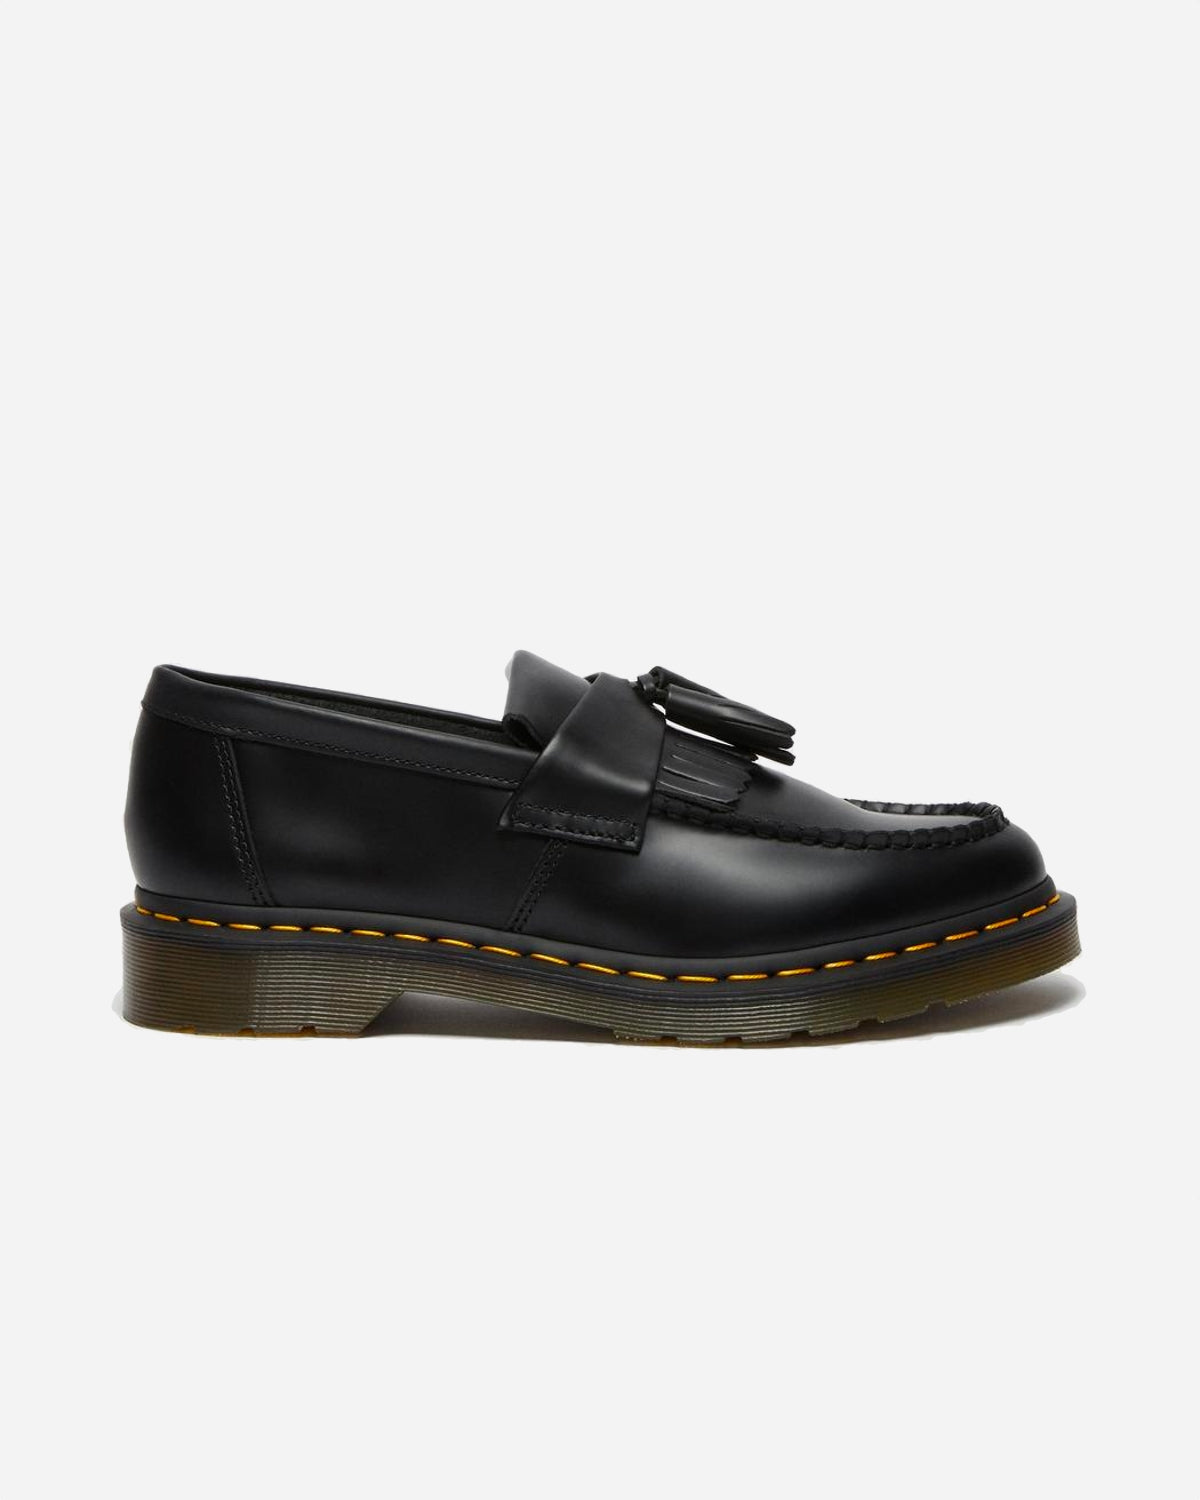 Adrian Smooth Leather Loafers - Black